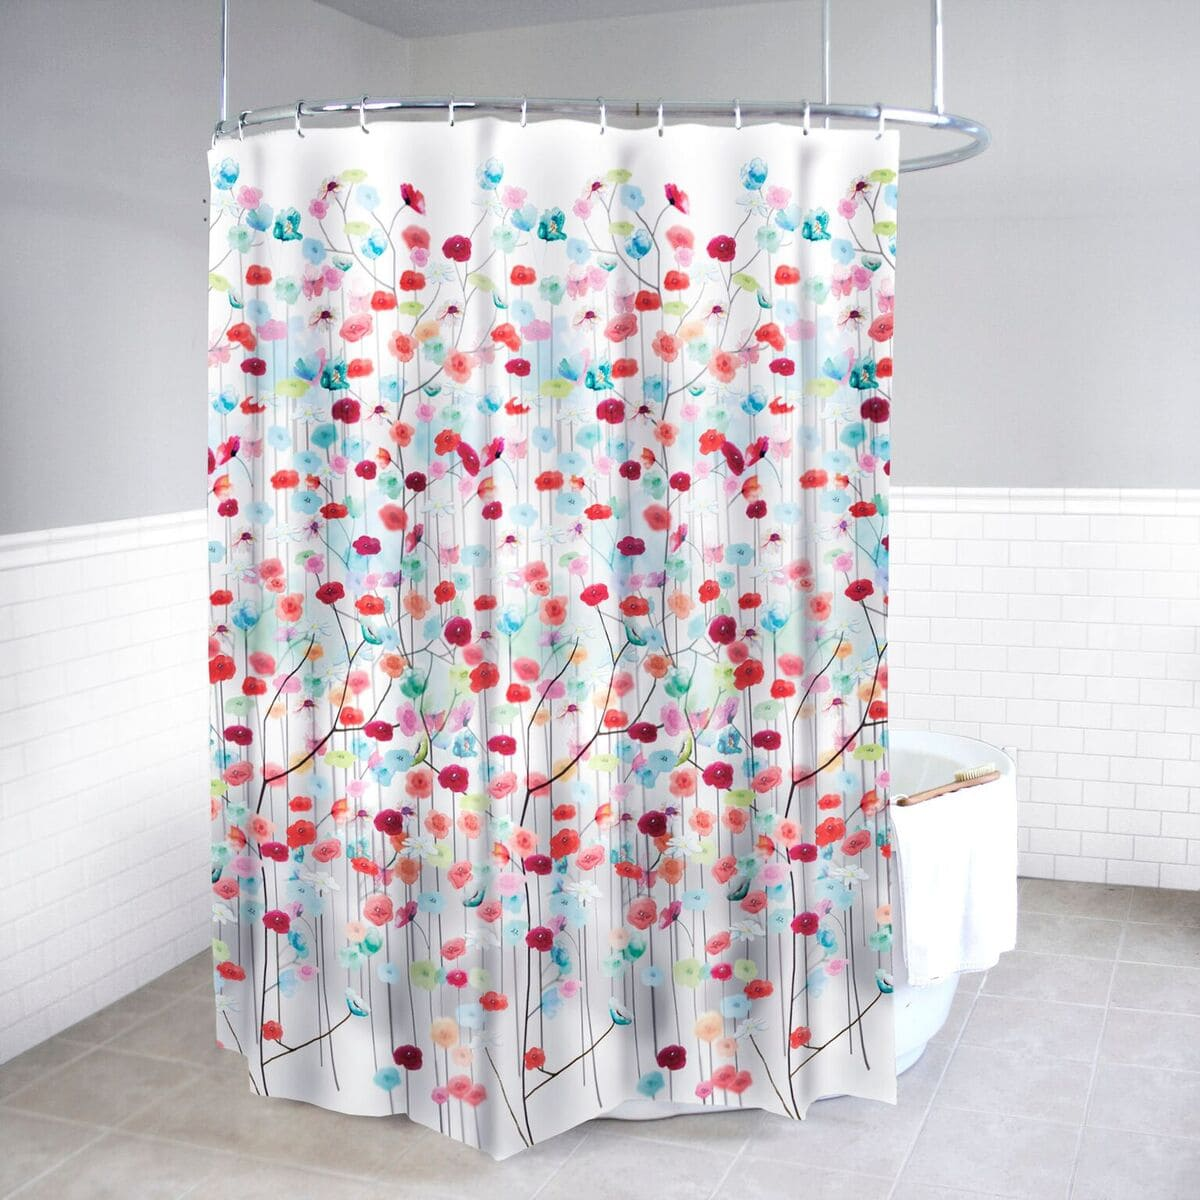 Bed Bath More: Bed Bath N More Mansi Fabric Shower Curtain And Hooks Set Or Separates Hooks